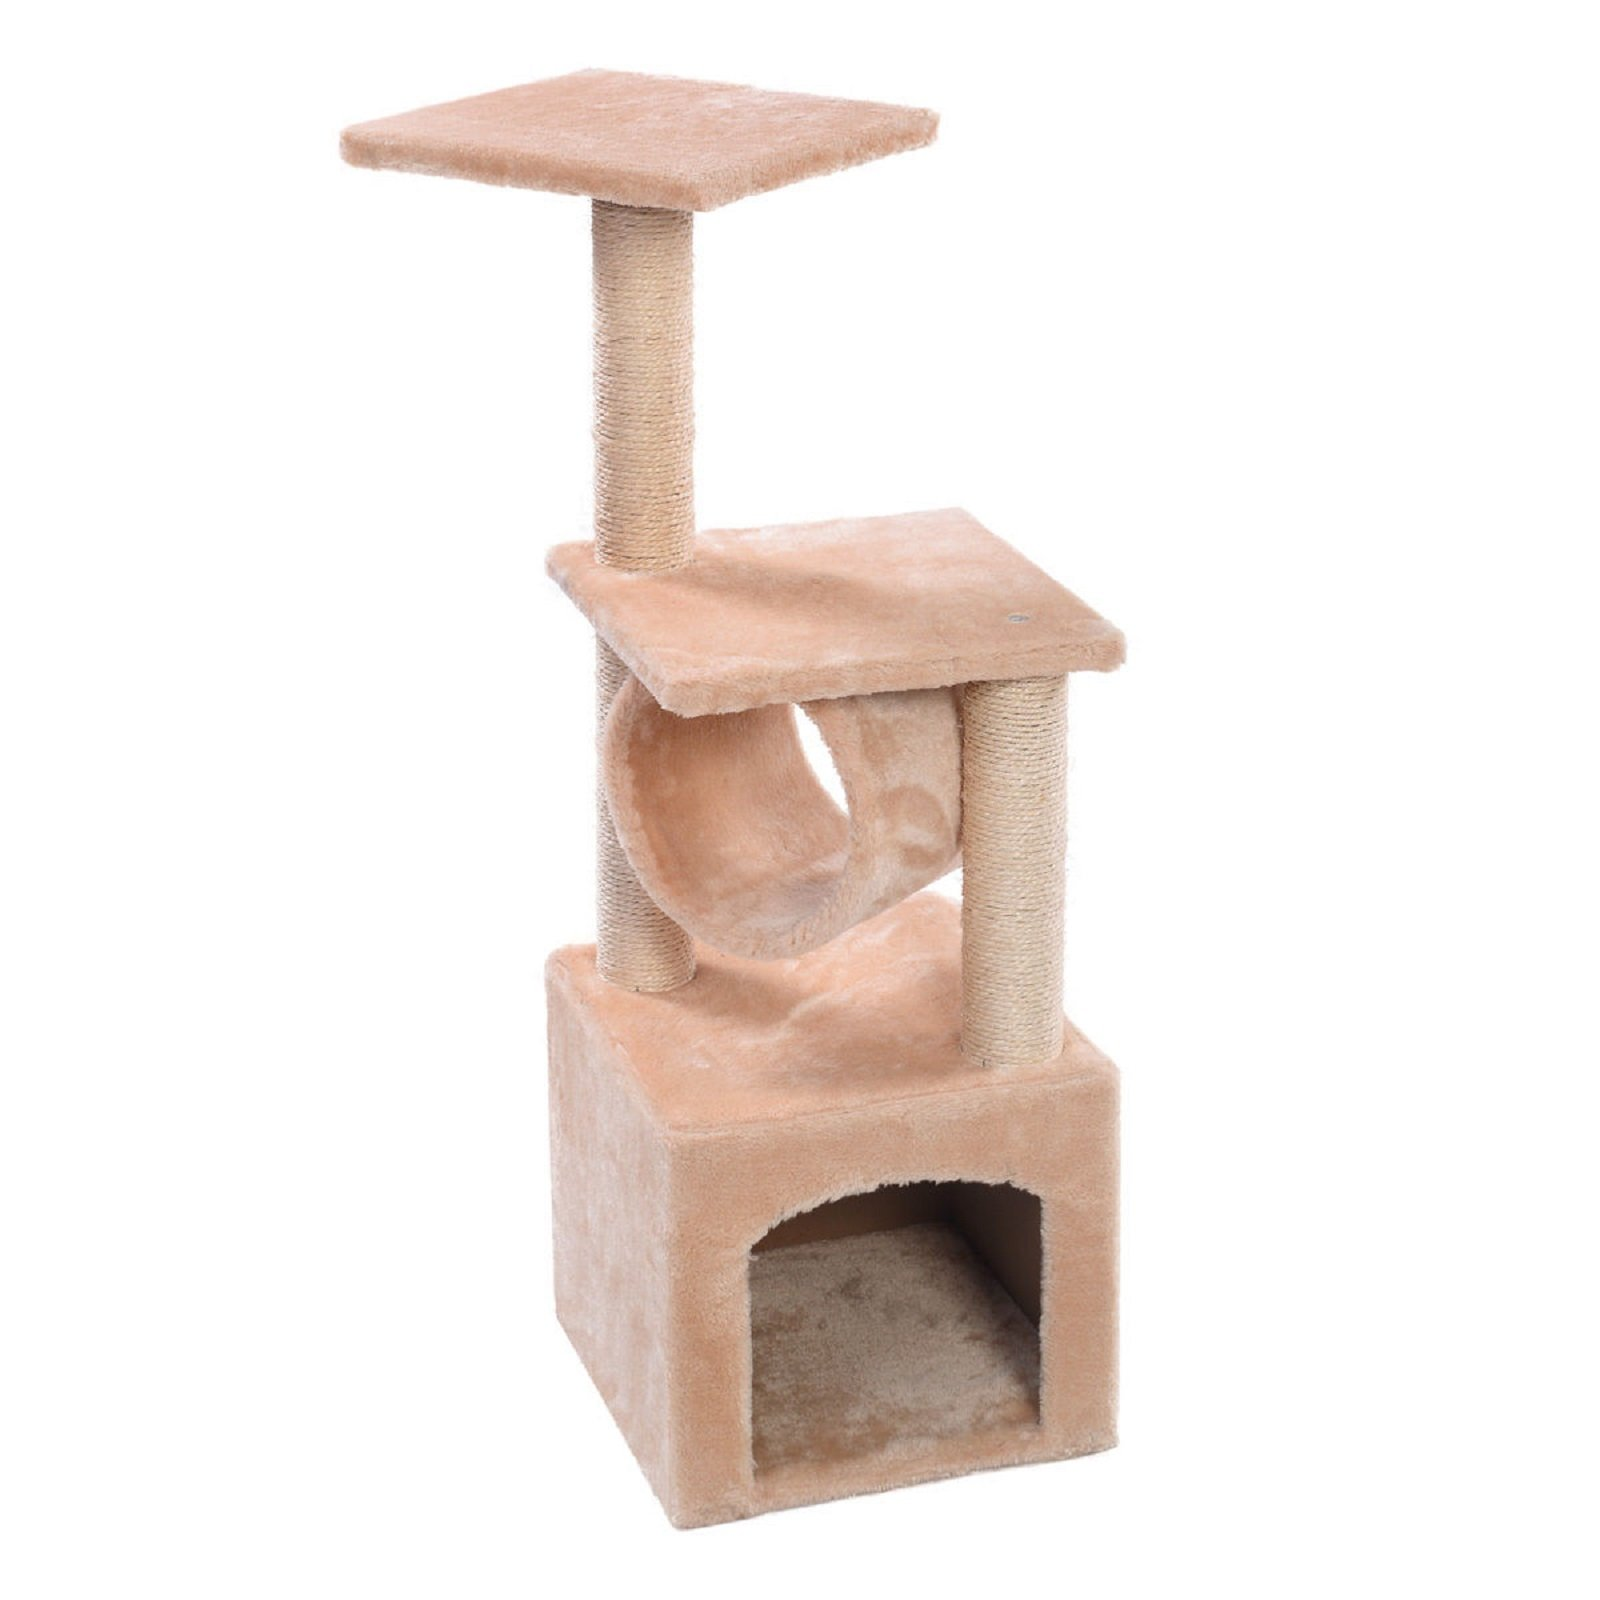 Hot Sale! Deluxe Cat Tree 36'' Condo Furniture Scratching Post Pet House Pet Play Toy